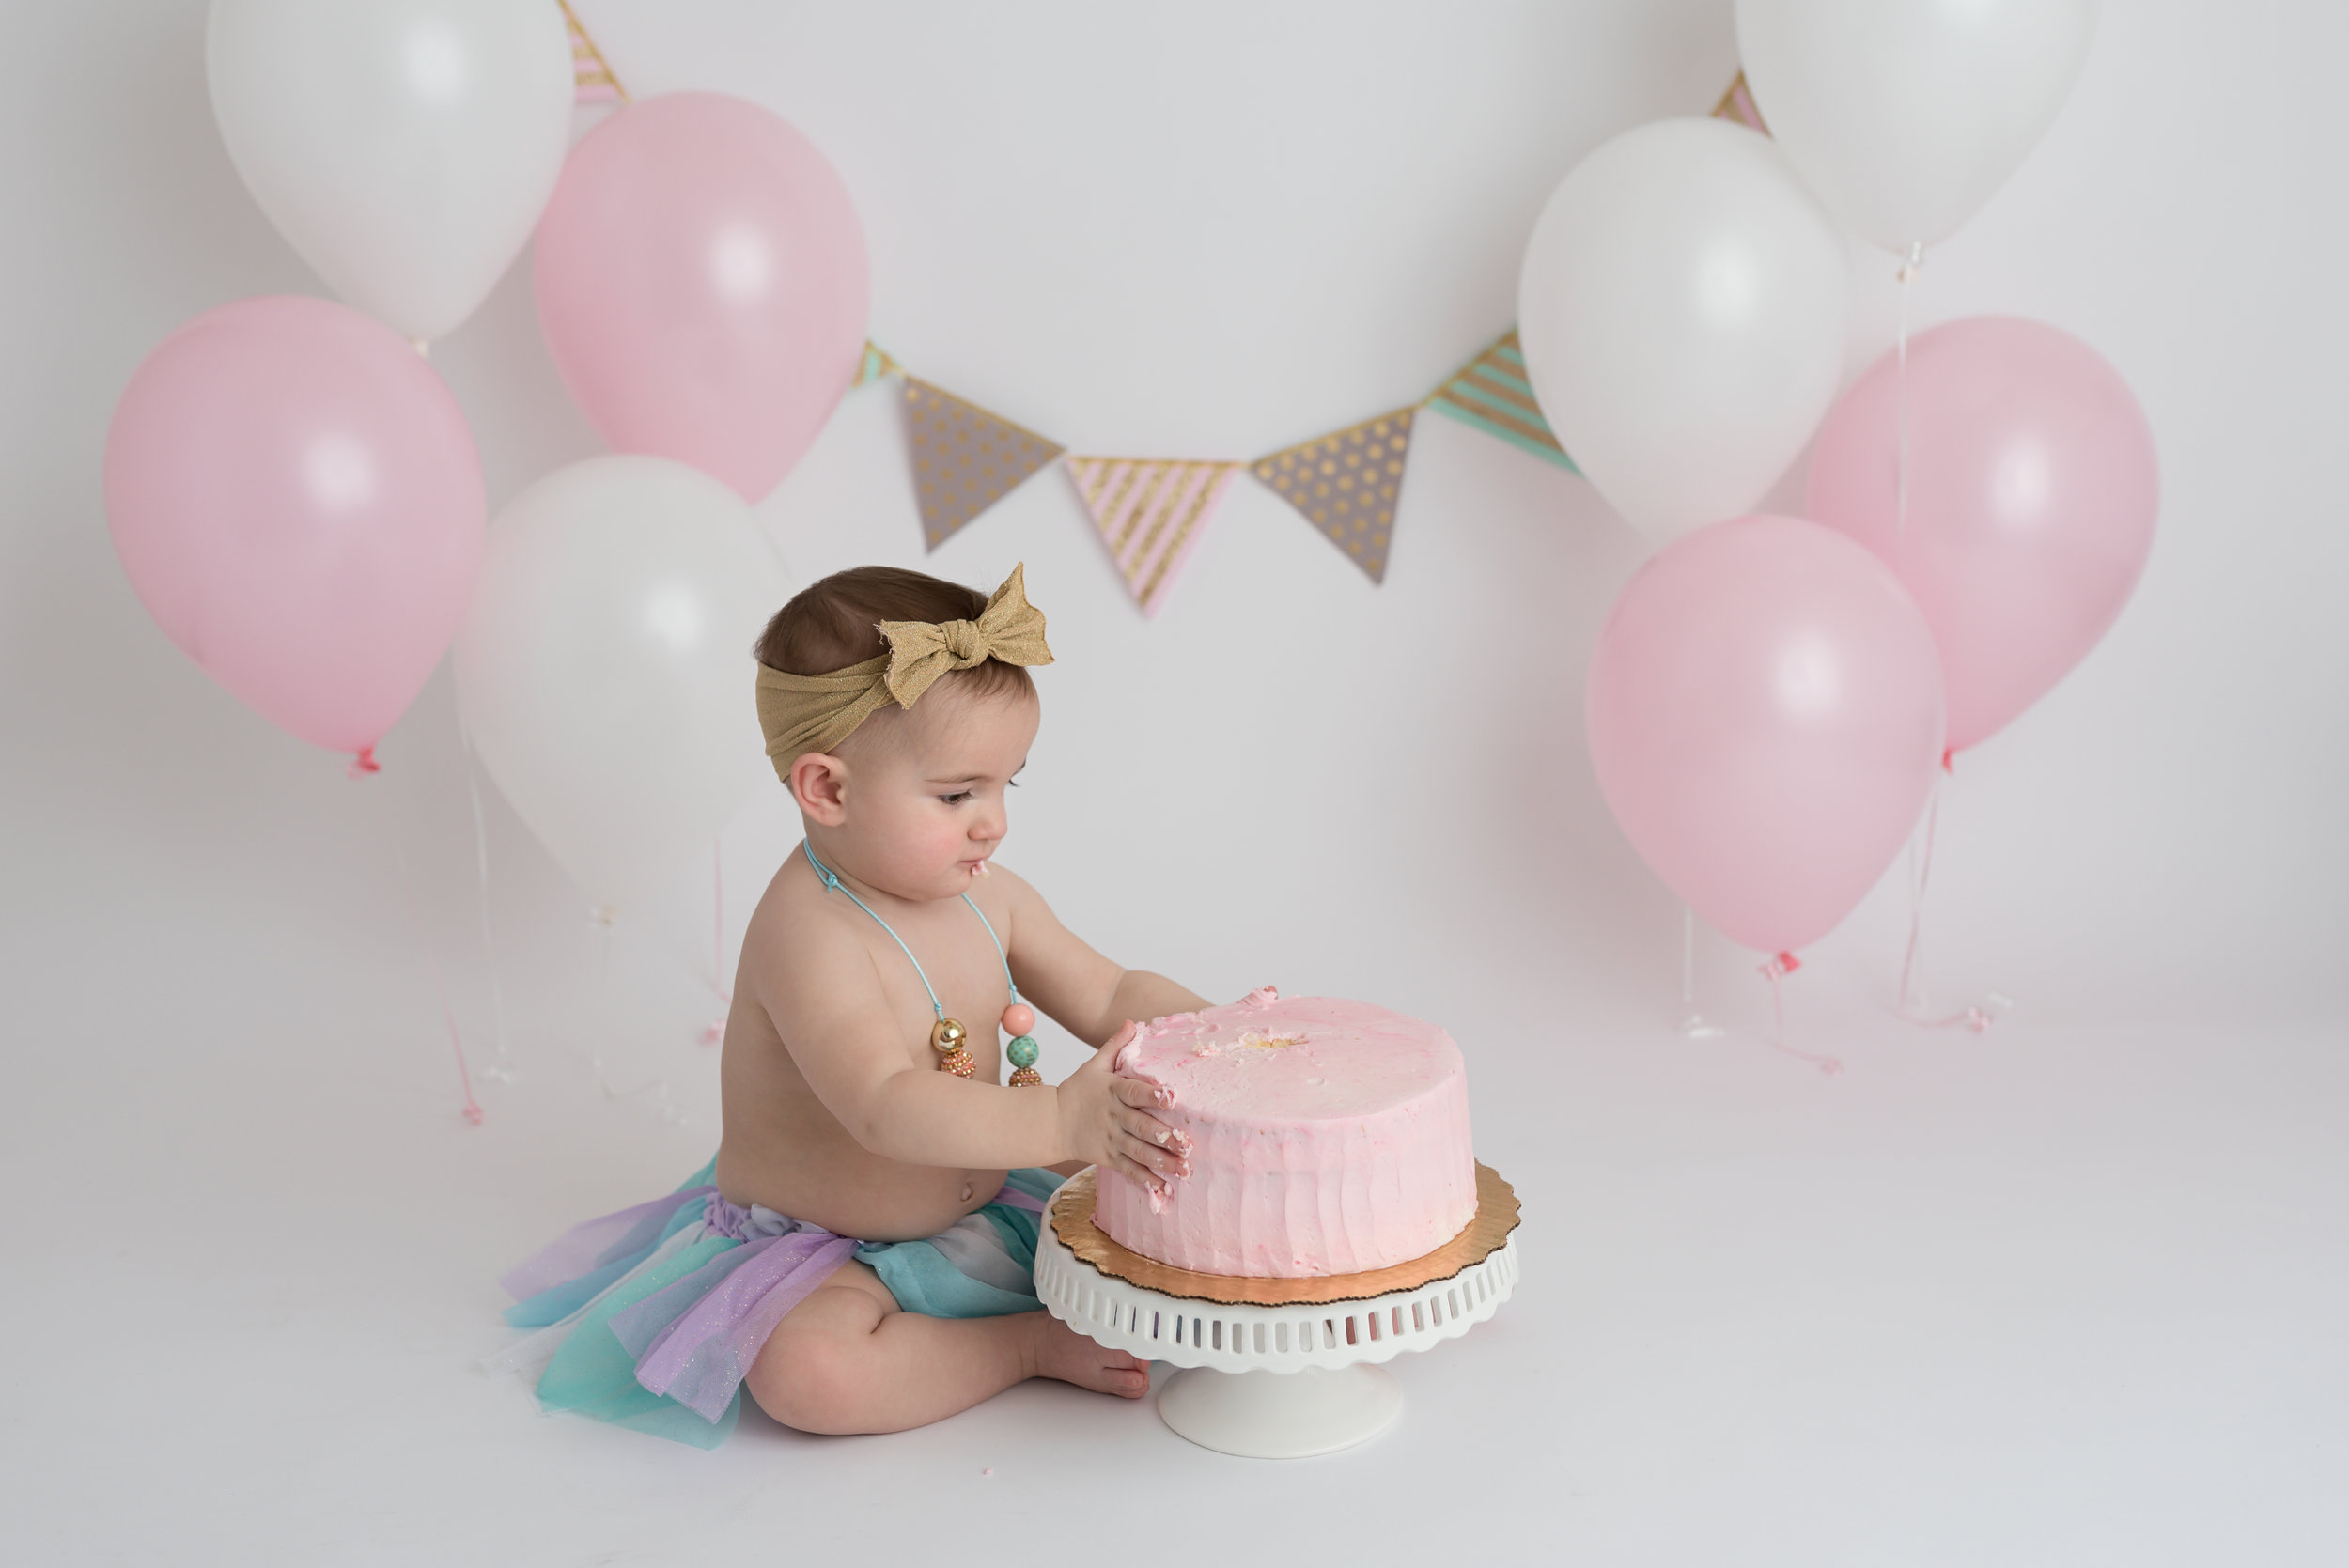 Charleston-Cake-Smash-Photographer-FSP_0875 copy.jpg